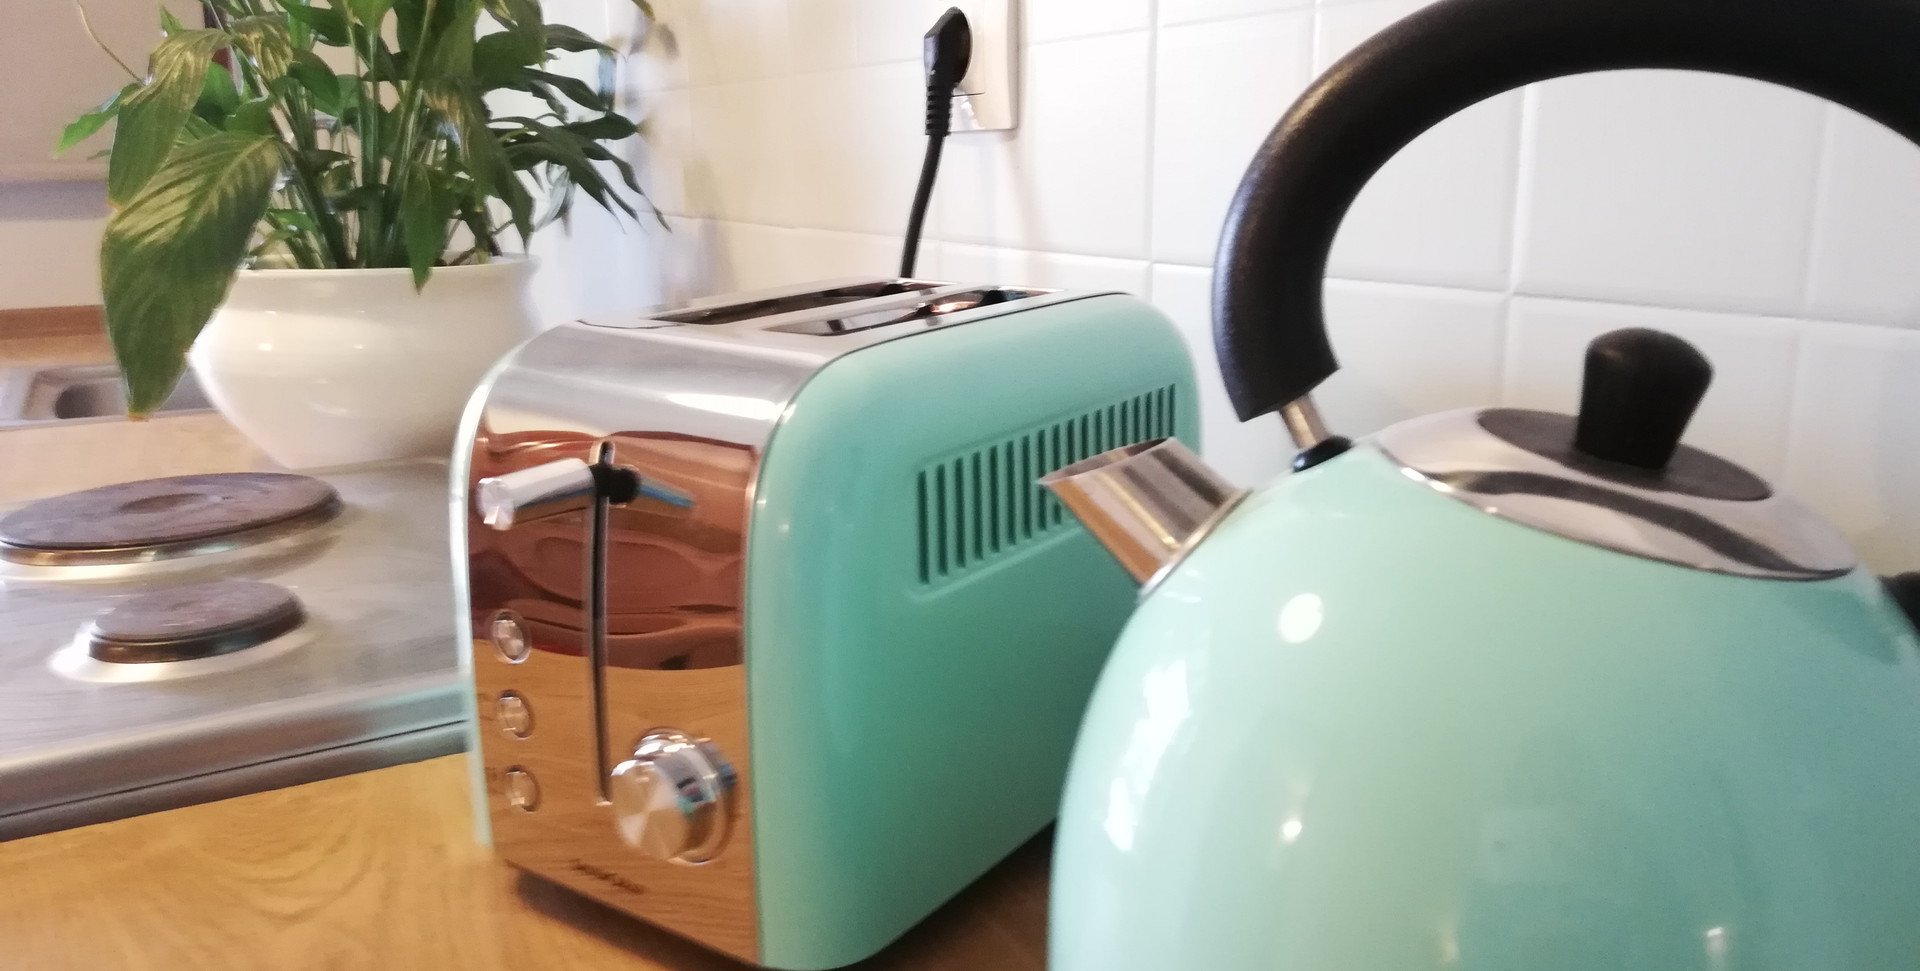 Toaster, Kettle, Oven, Hob